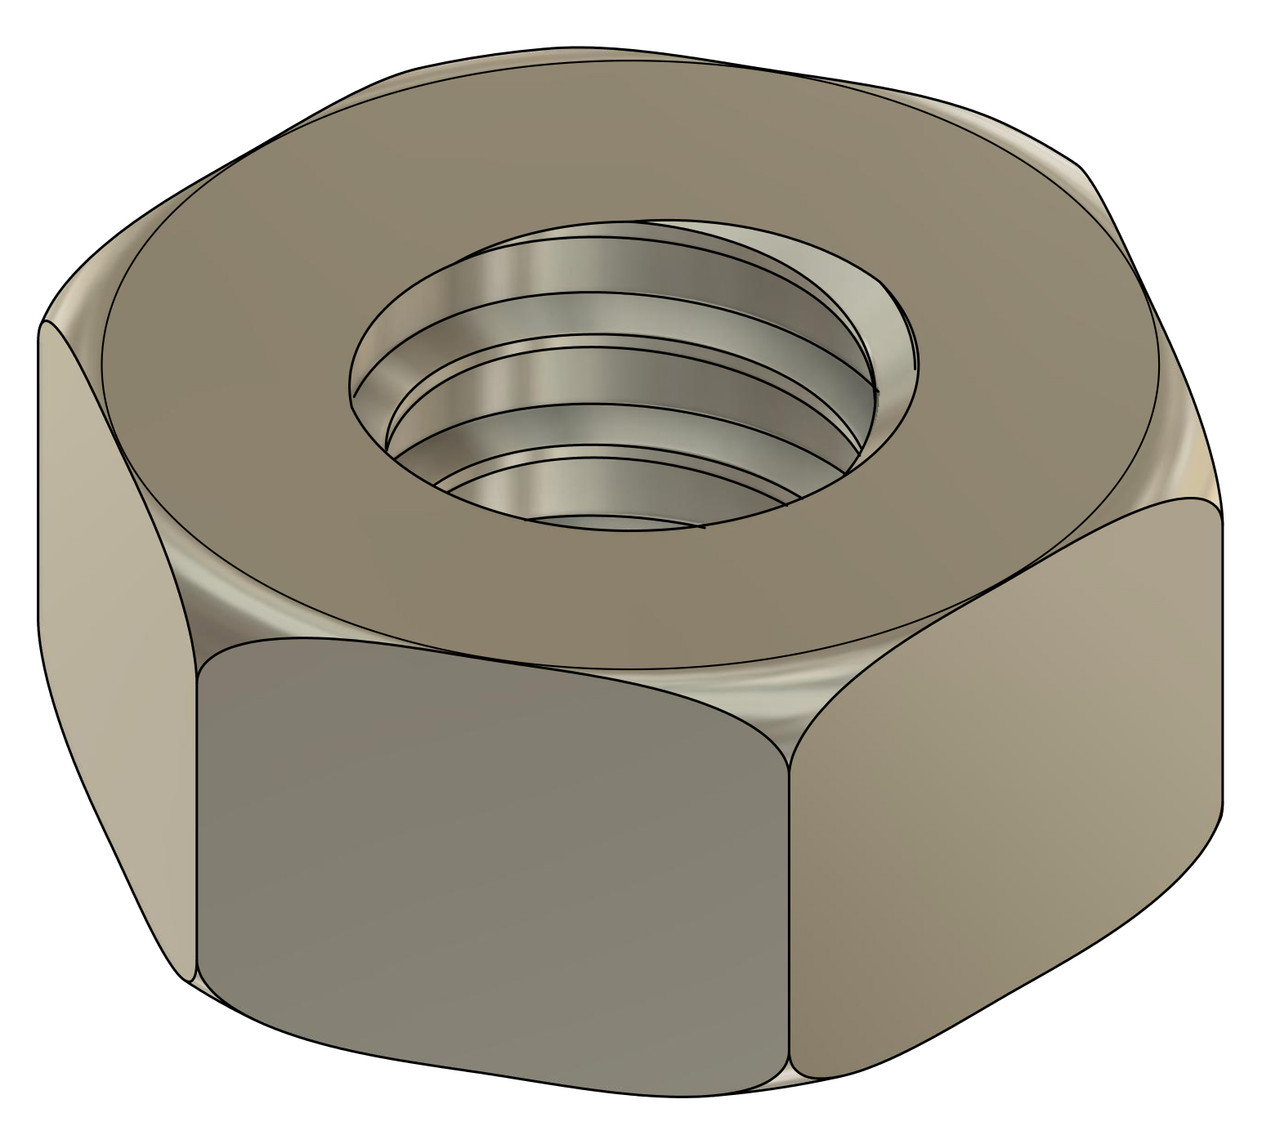 """Machined Hex Nut  Oversized 00-90 (.050"""" / 1.27mm) Thread ACF (across the flats) 2.2mm / .089"""" Material: Nickel Silver, a copper alloy resistant to tarnish often used in jewelry and eyewear. Part Color Finish is Silver Price is for 100 count package"""